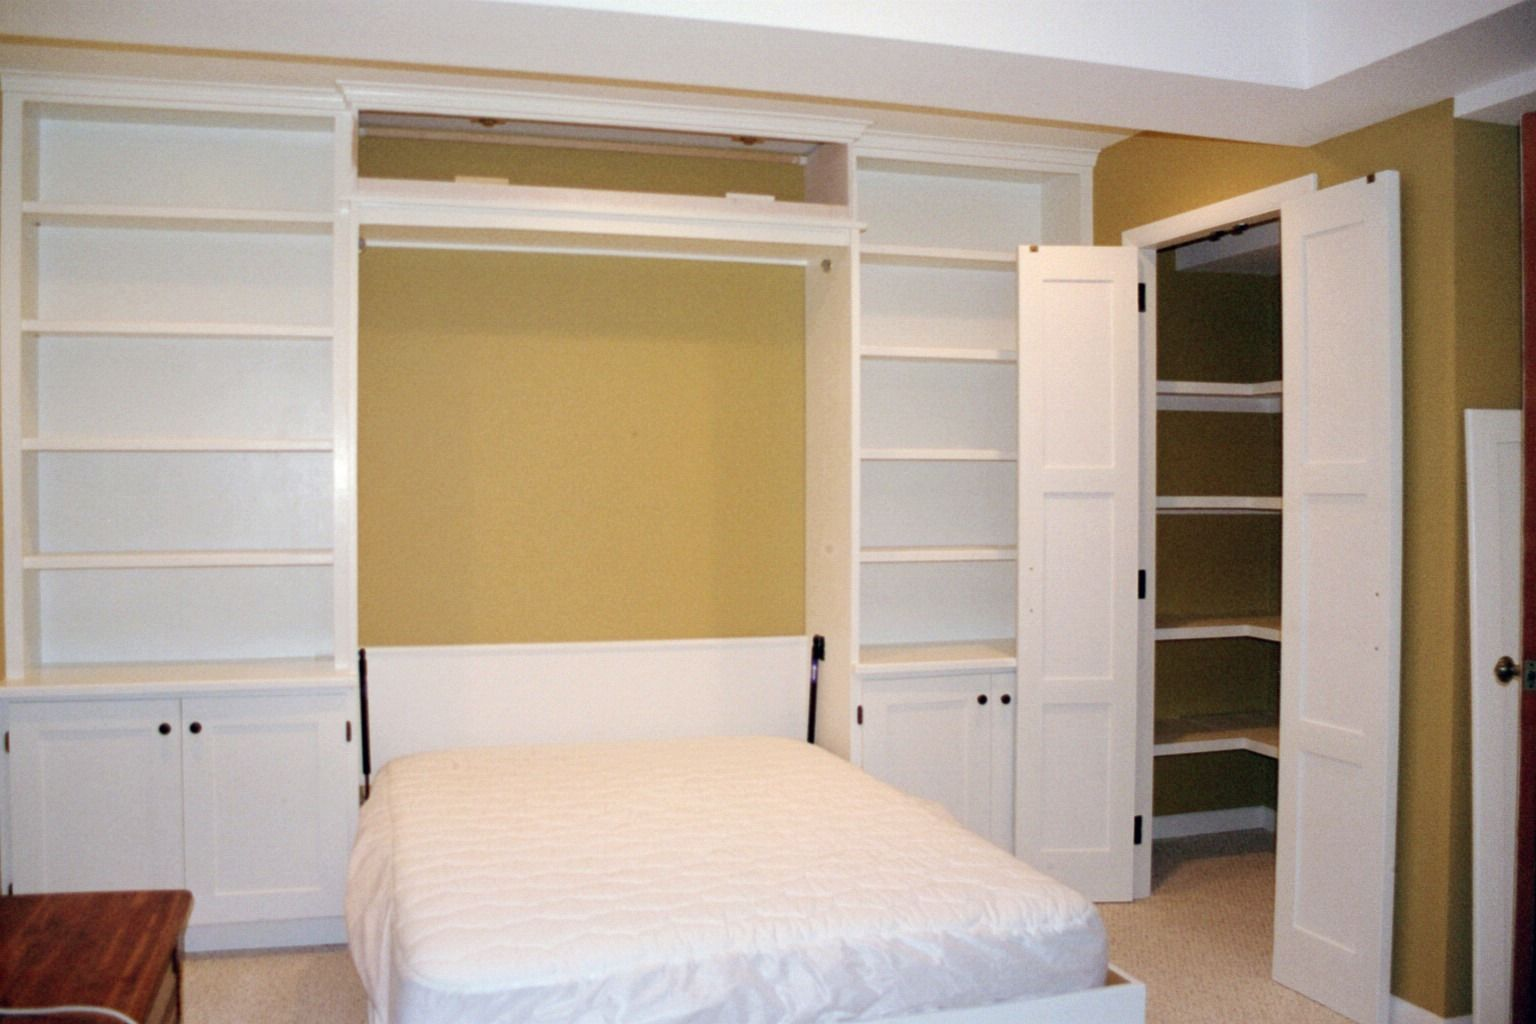 Murphy bed murphy bed with cabinets murphy beds for the home pinterest murphy bed - Pinterest murphy bed ...